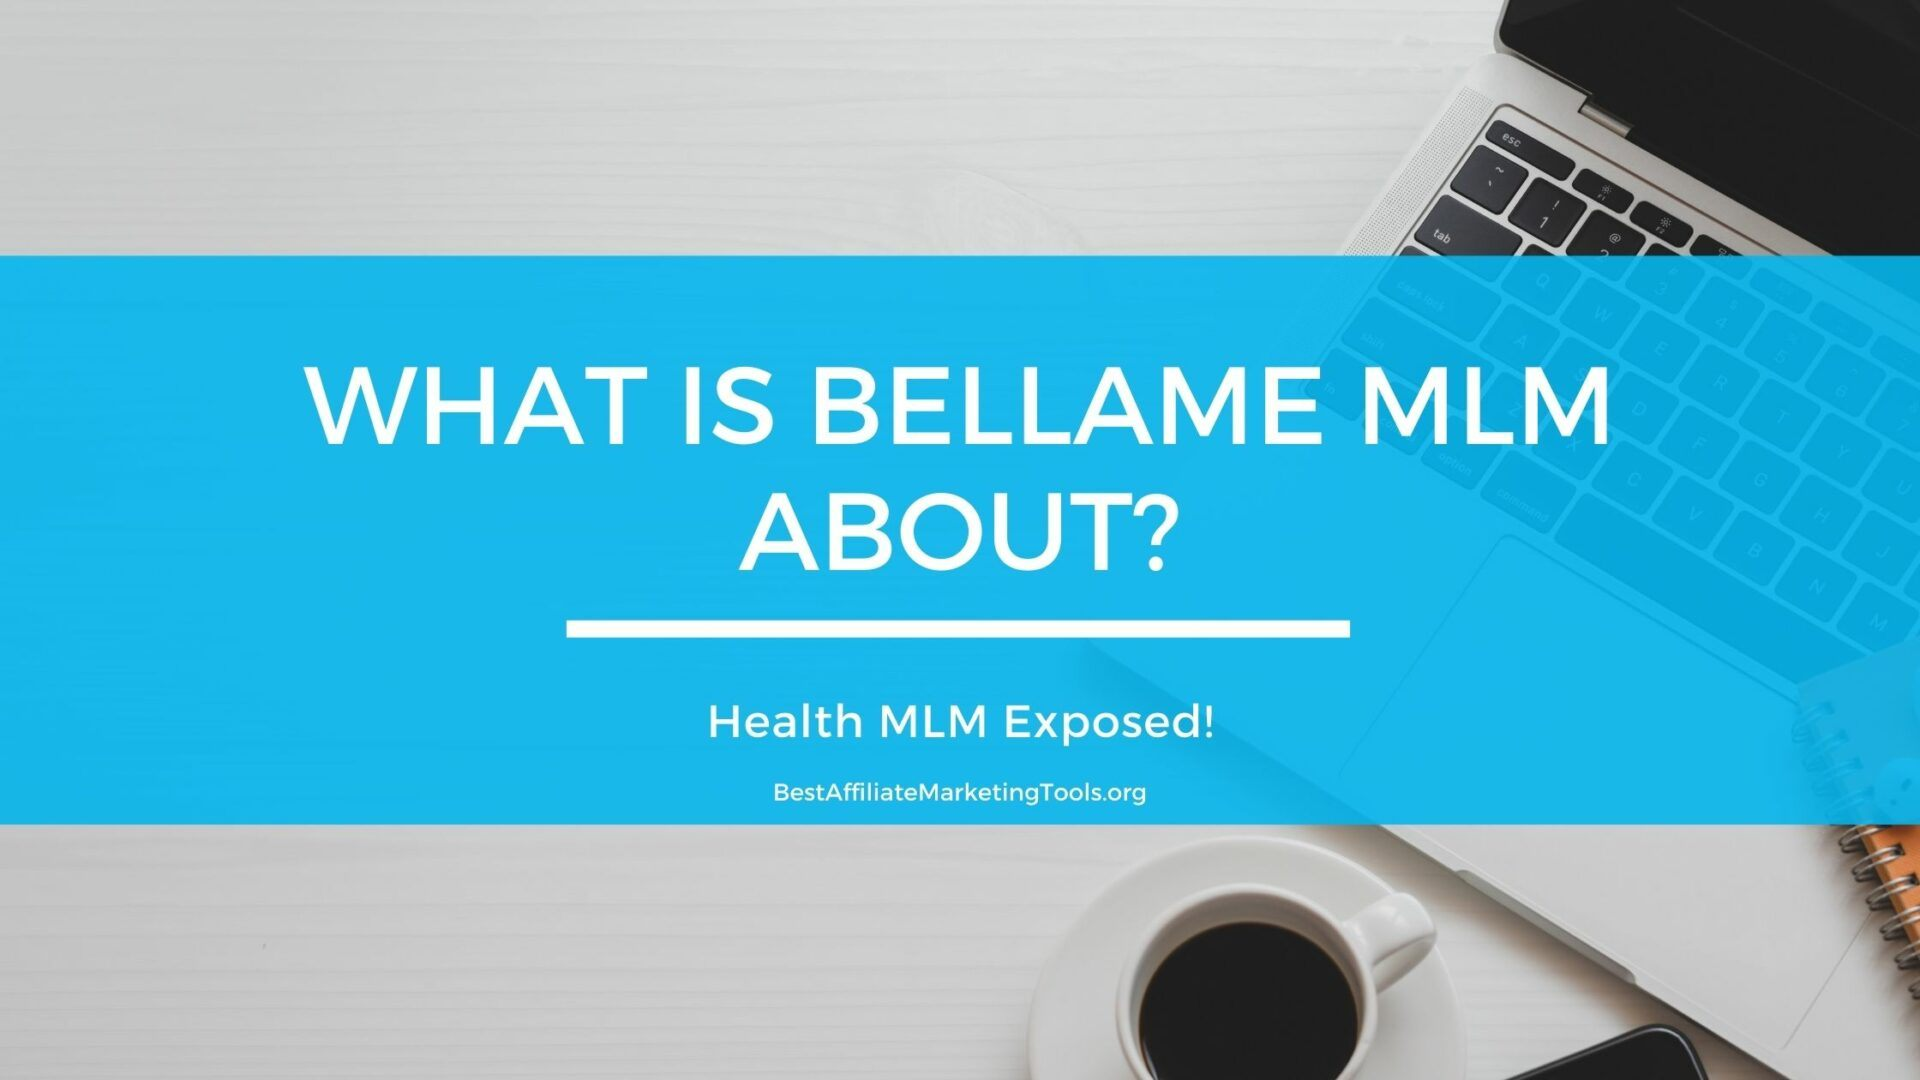 What Is Bellame MLM About